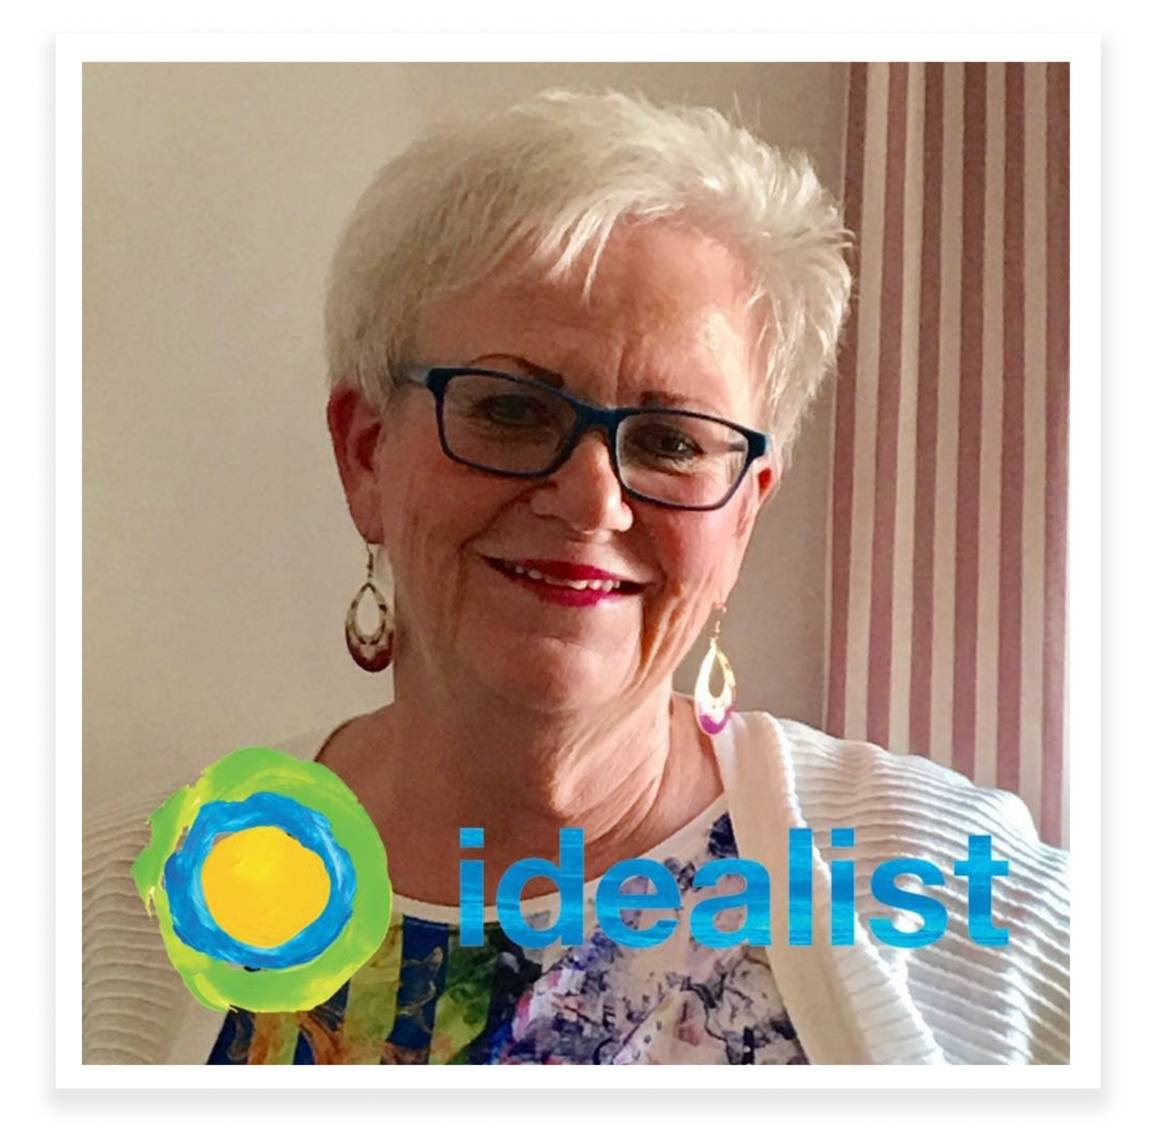 5 Questions for Idealists: Barbro Hegland - Idealist Days Blog